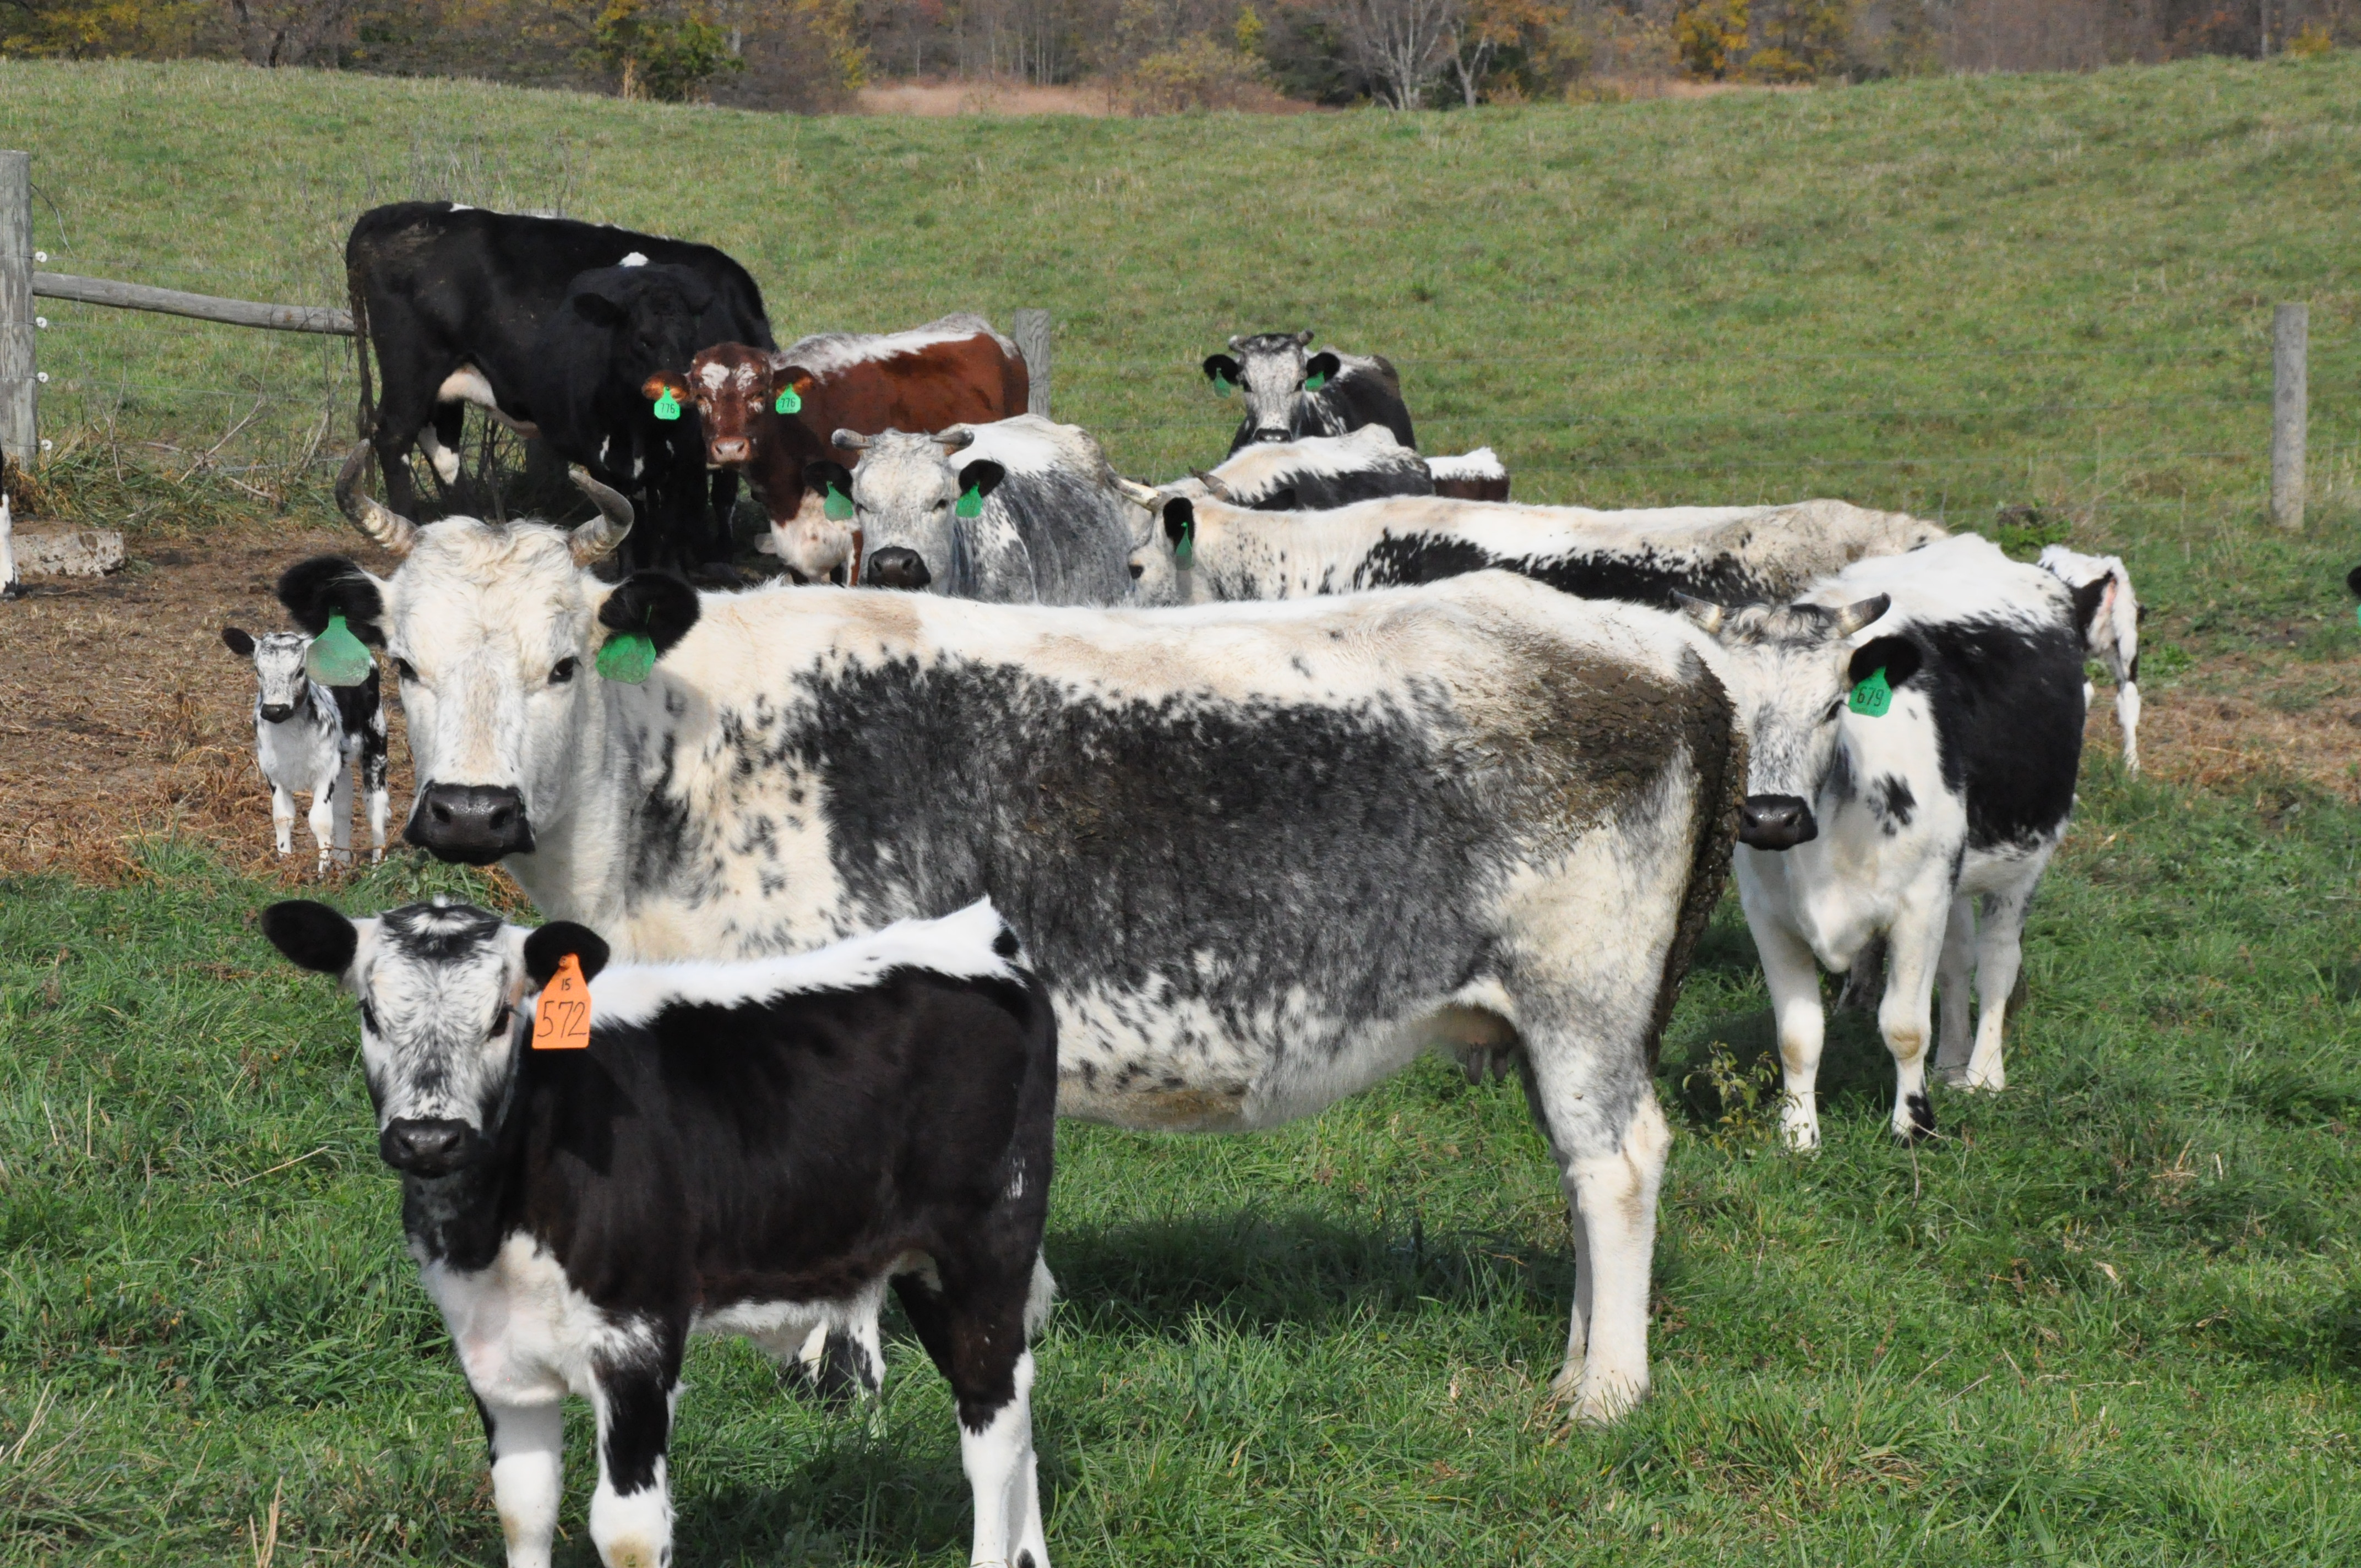 From the brink of extinction to the dinner plate: A local farm saves rare heritage cattle